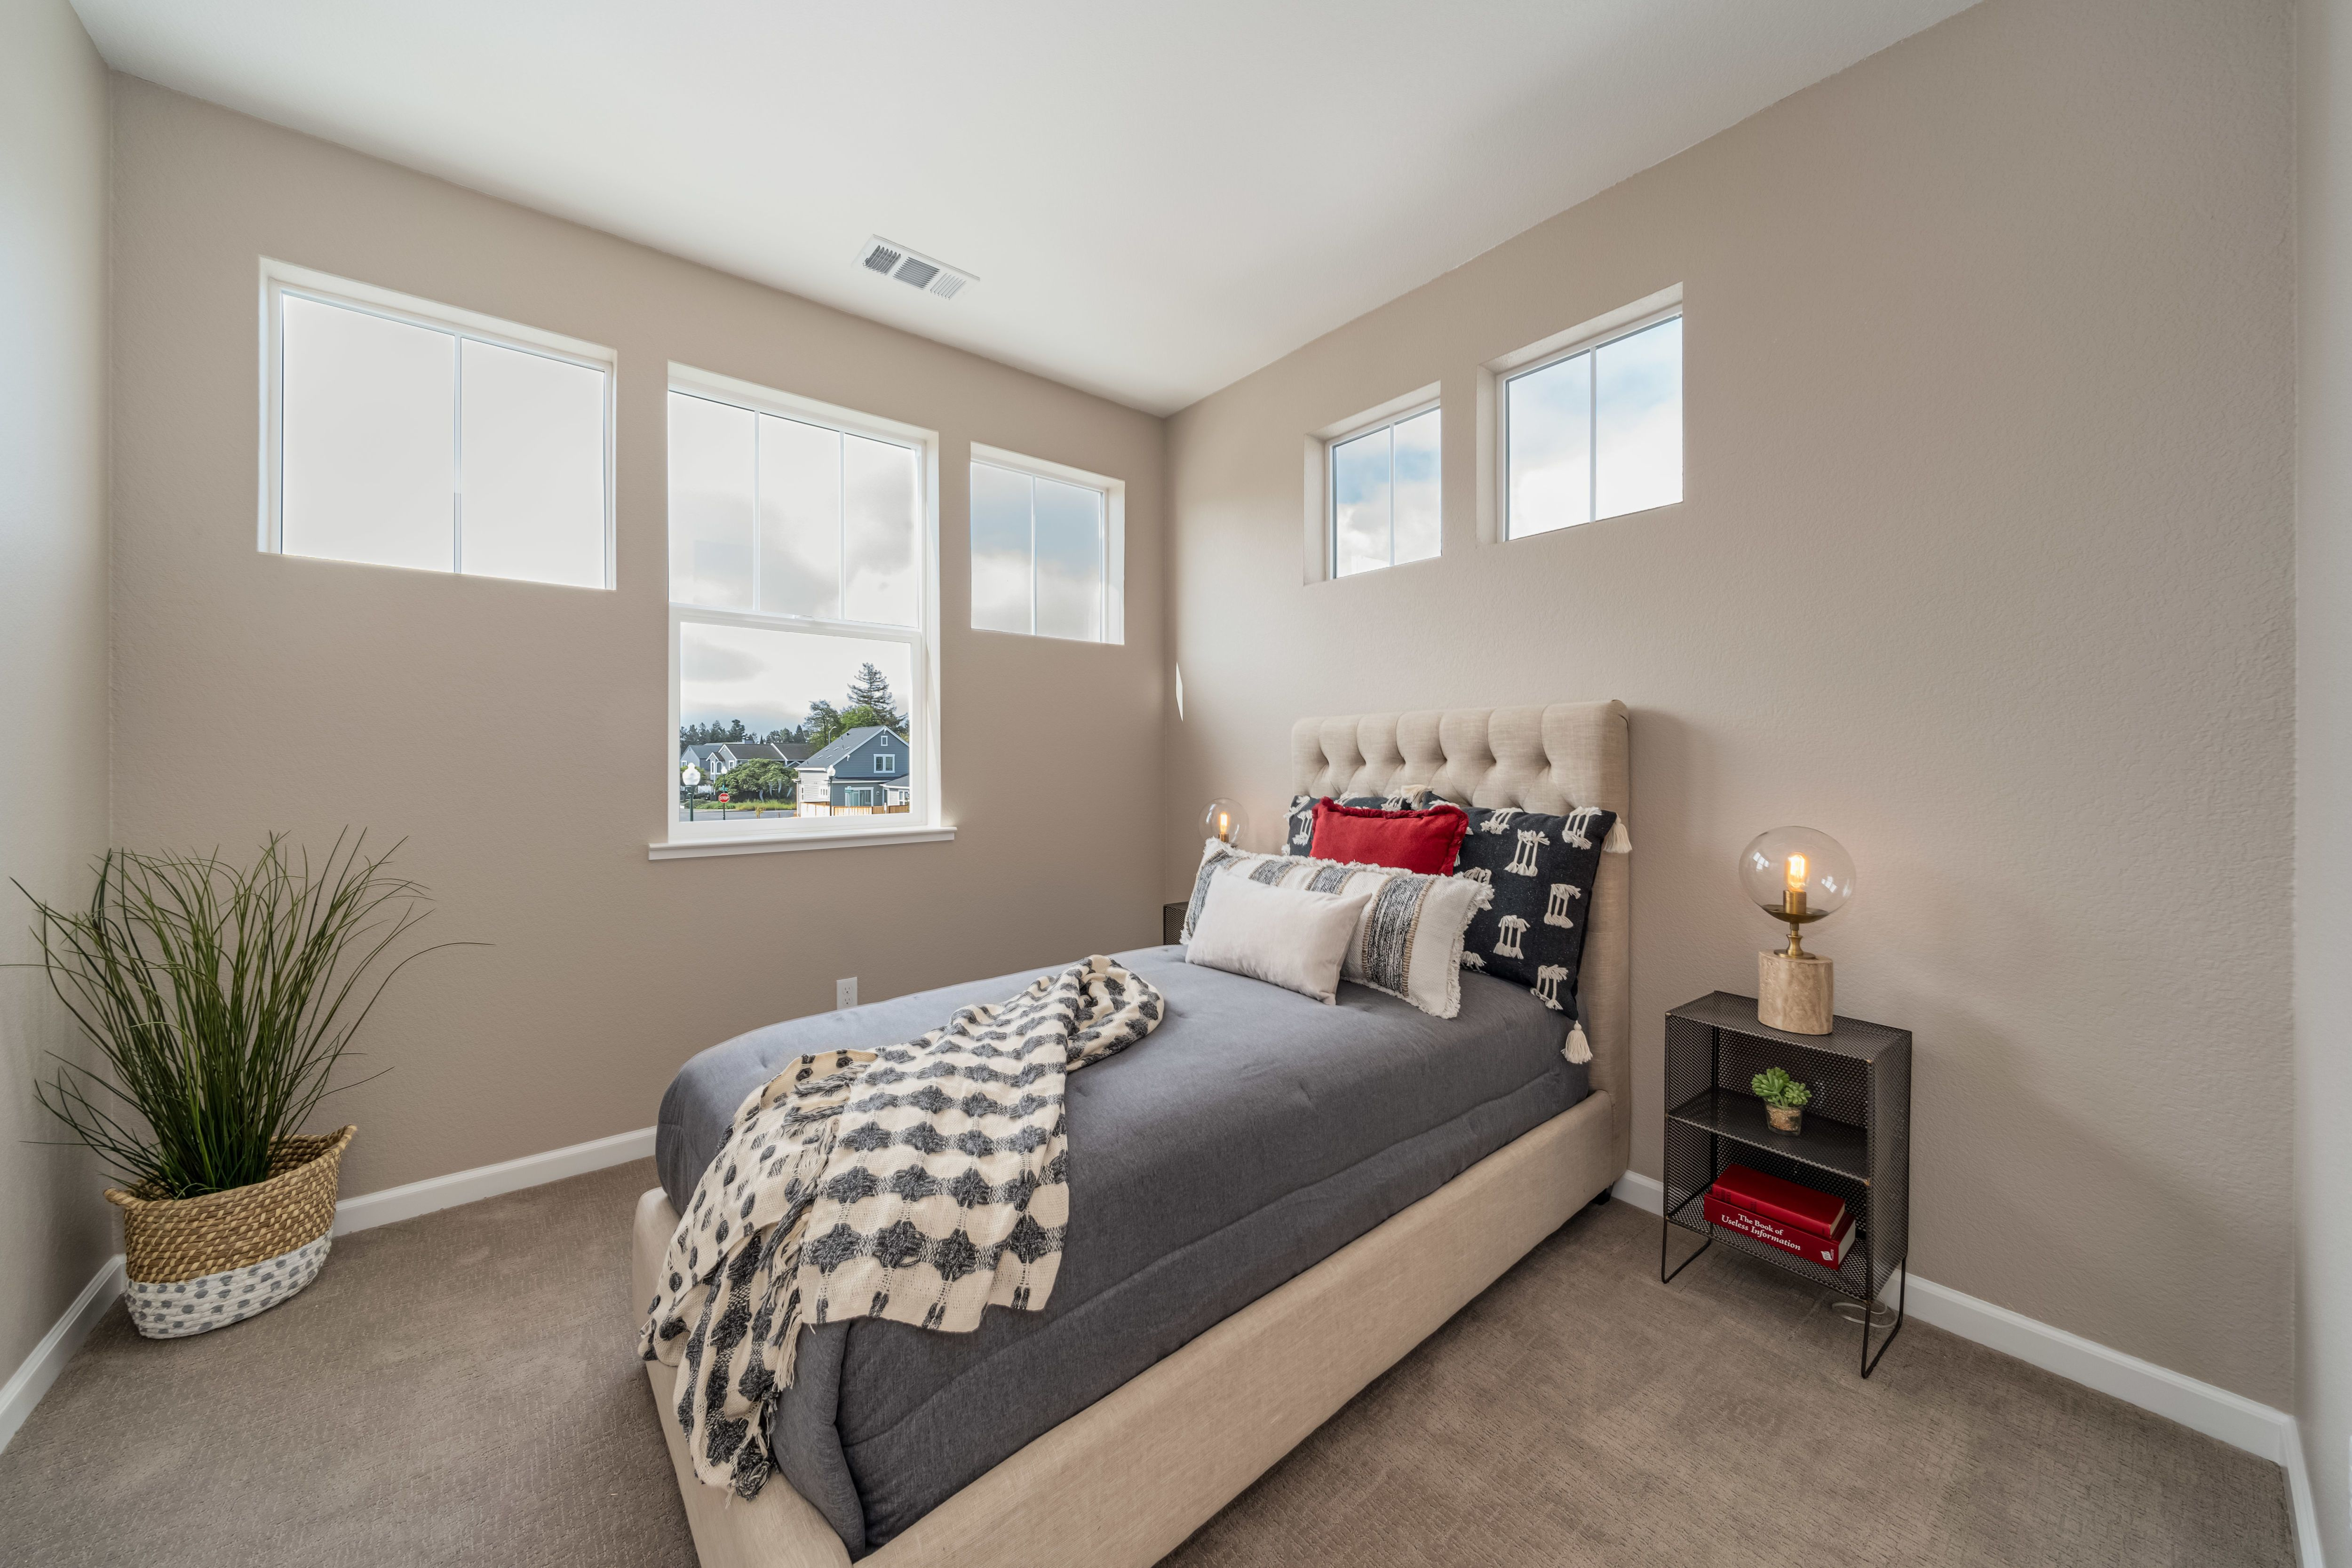 Bedroom featured in the Plan 1A By The Gardens in Santa Rosa, CA